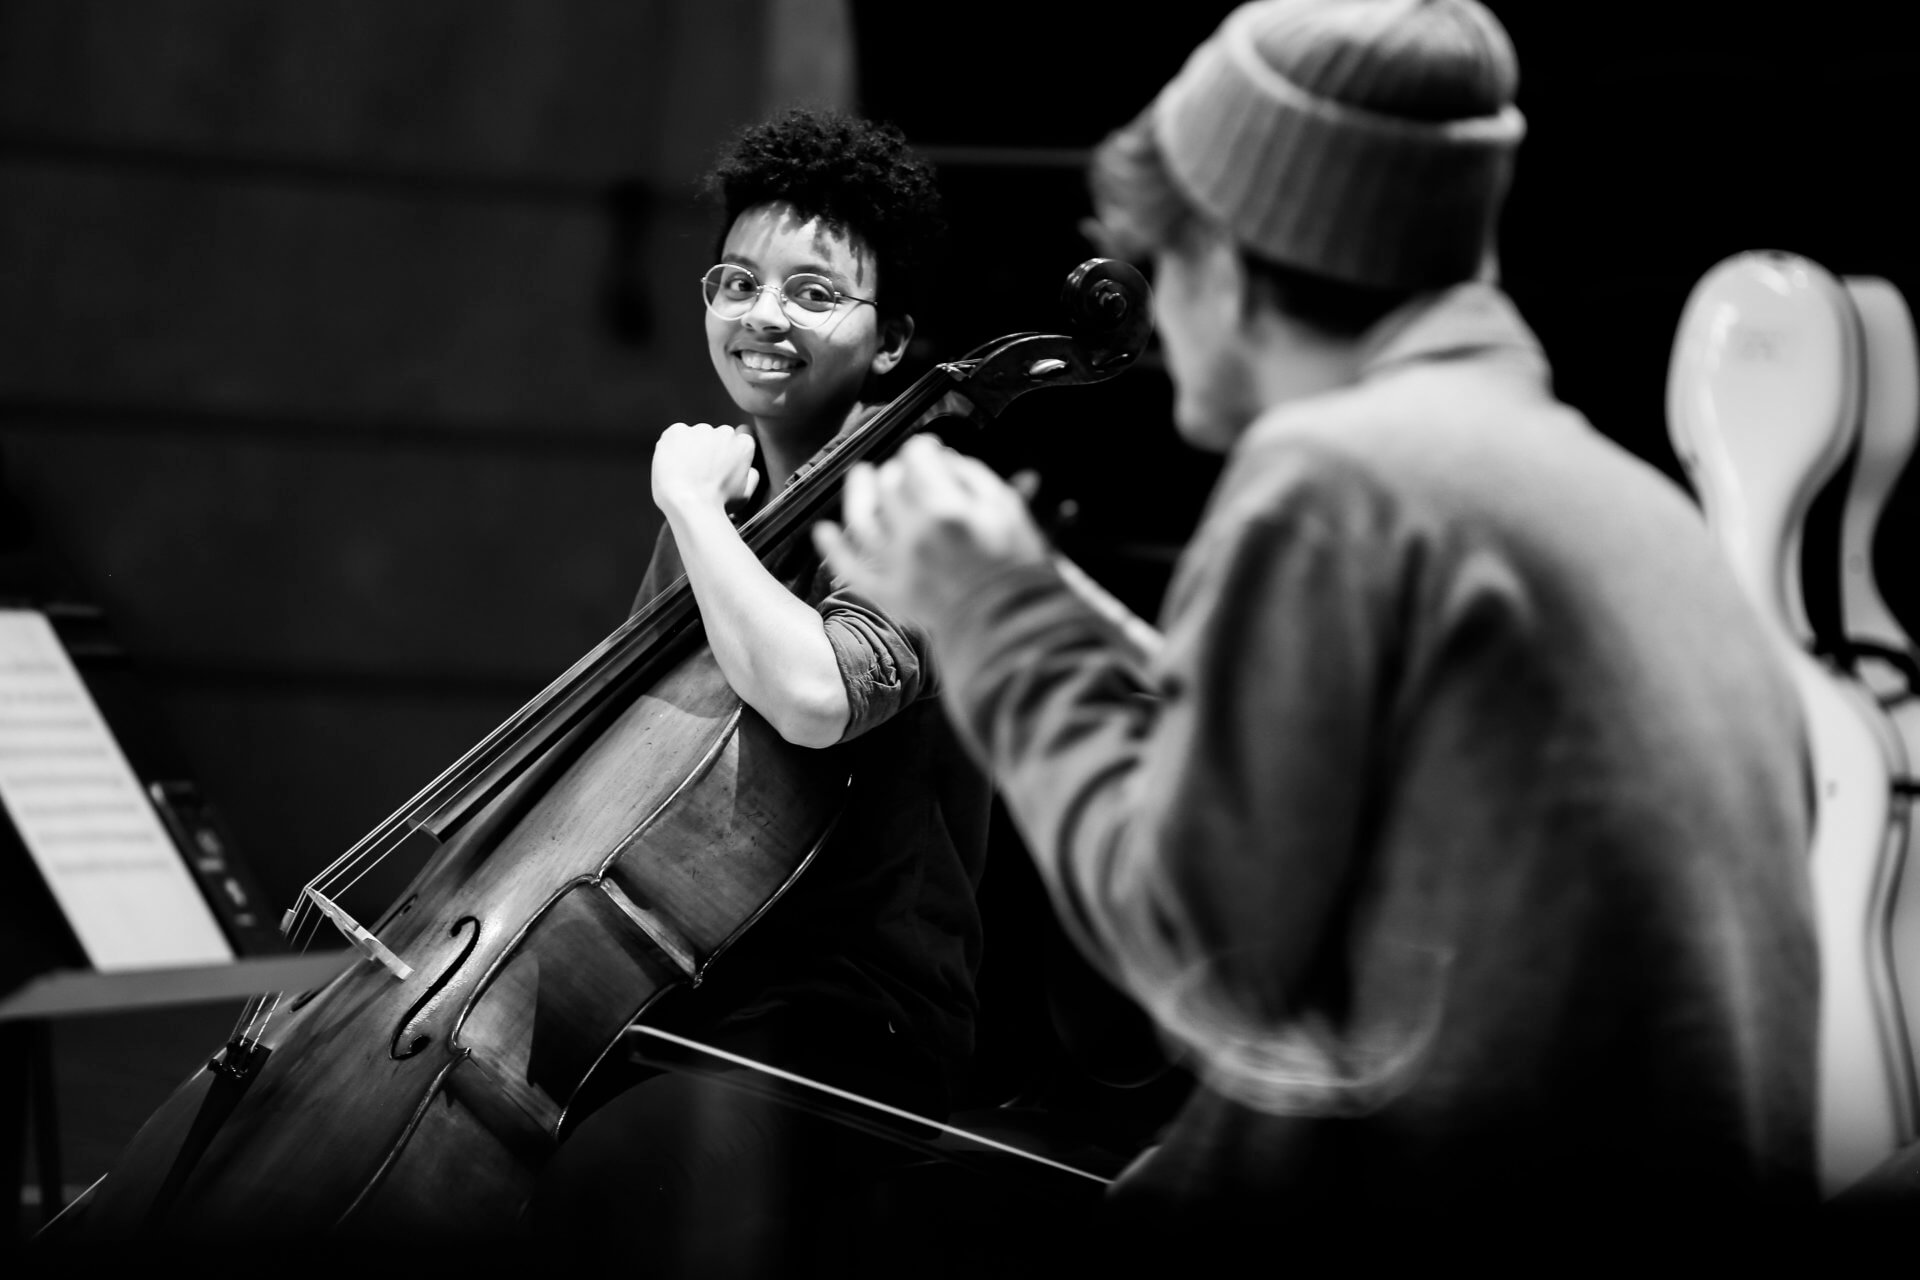 B&W image of RCS student Simone Seales smiling and looking at Daniel Pioro, who has his back to the camera. Simone is part of Studio Collective. She is pictured holding her cello.